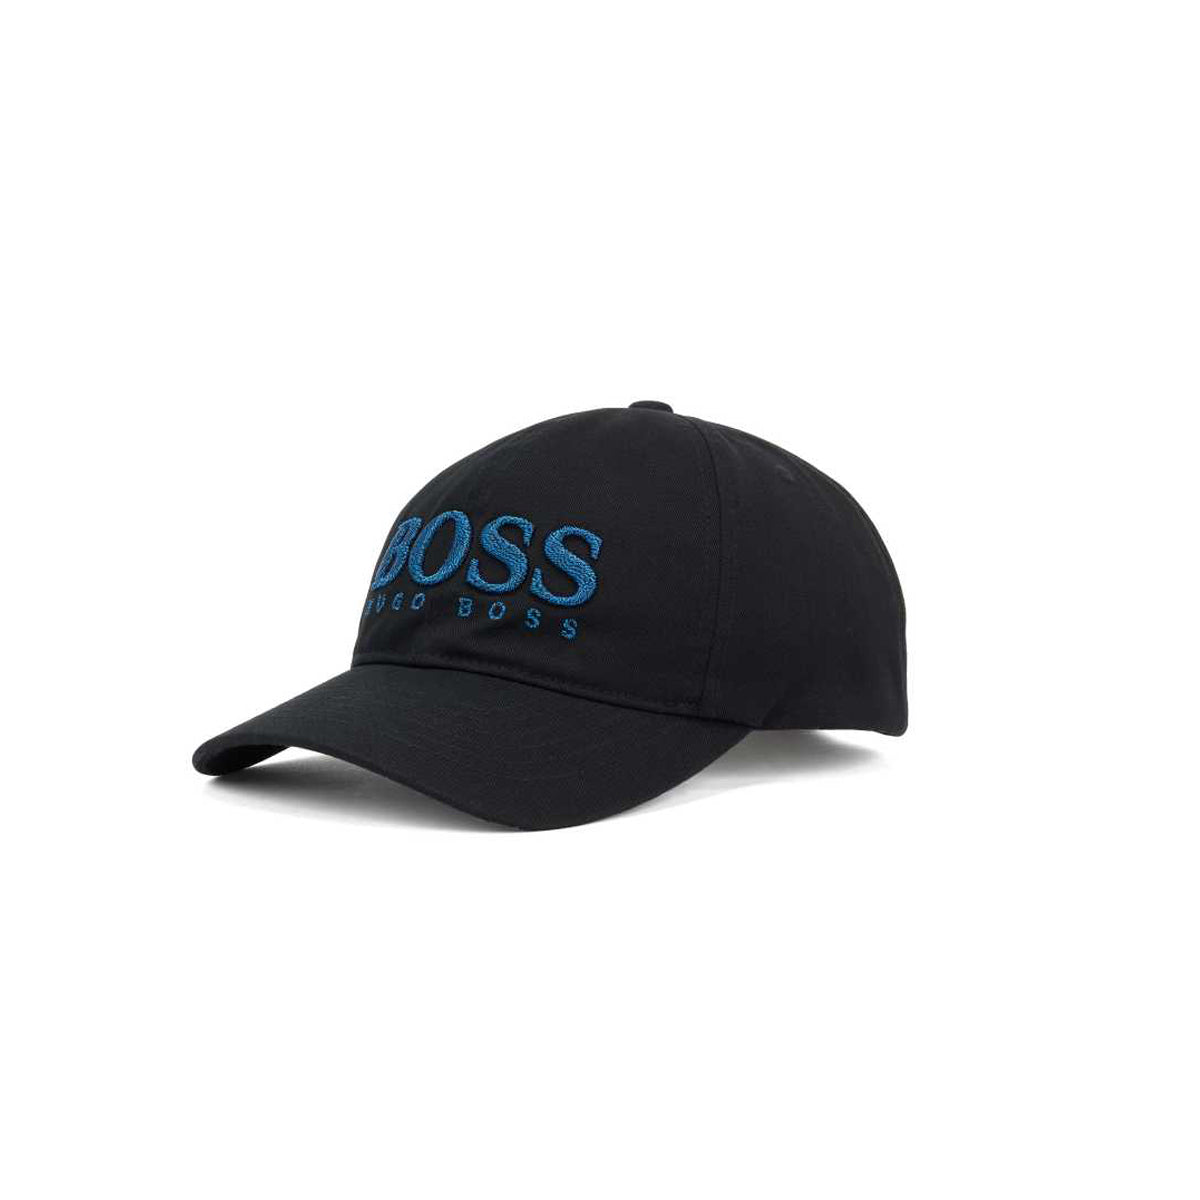 HUGO BOSS FERO-2 MEN'S CAP 50428869-001